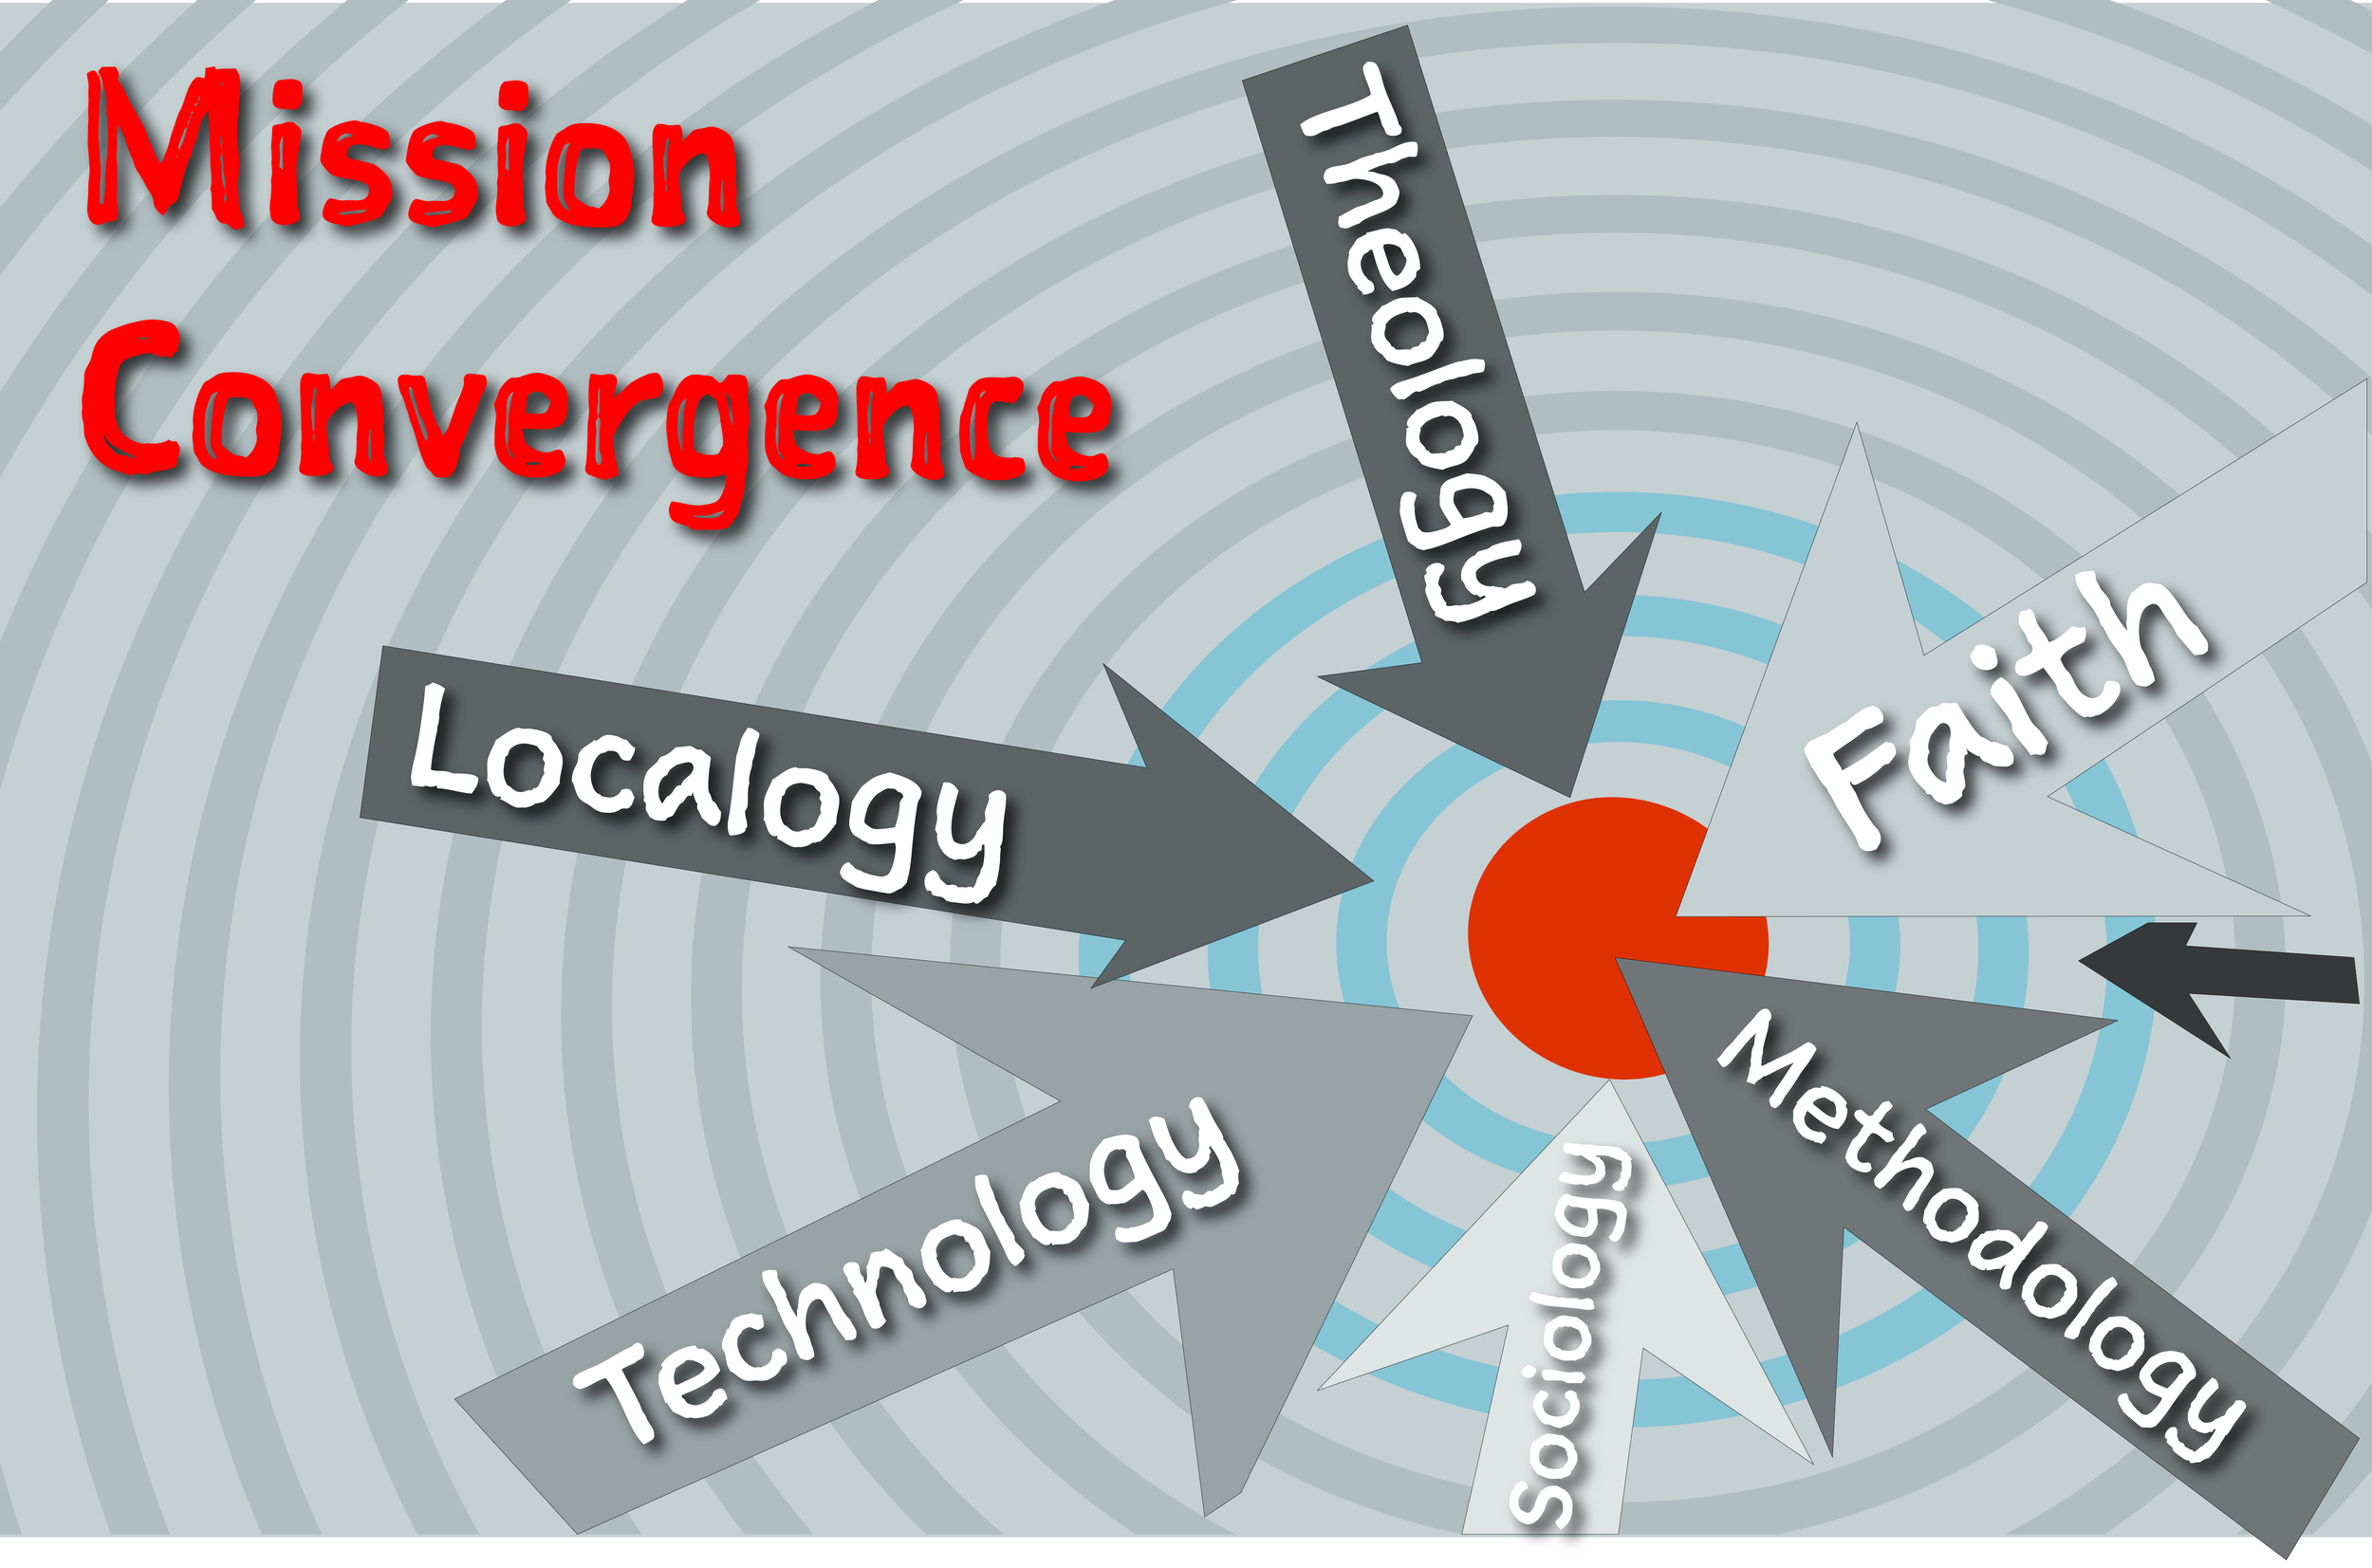 The intersection of your mission convergence is affected by forces. Are you paying attention?